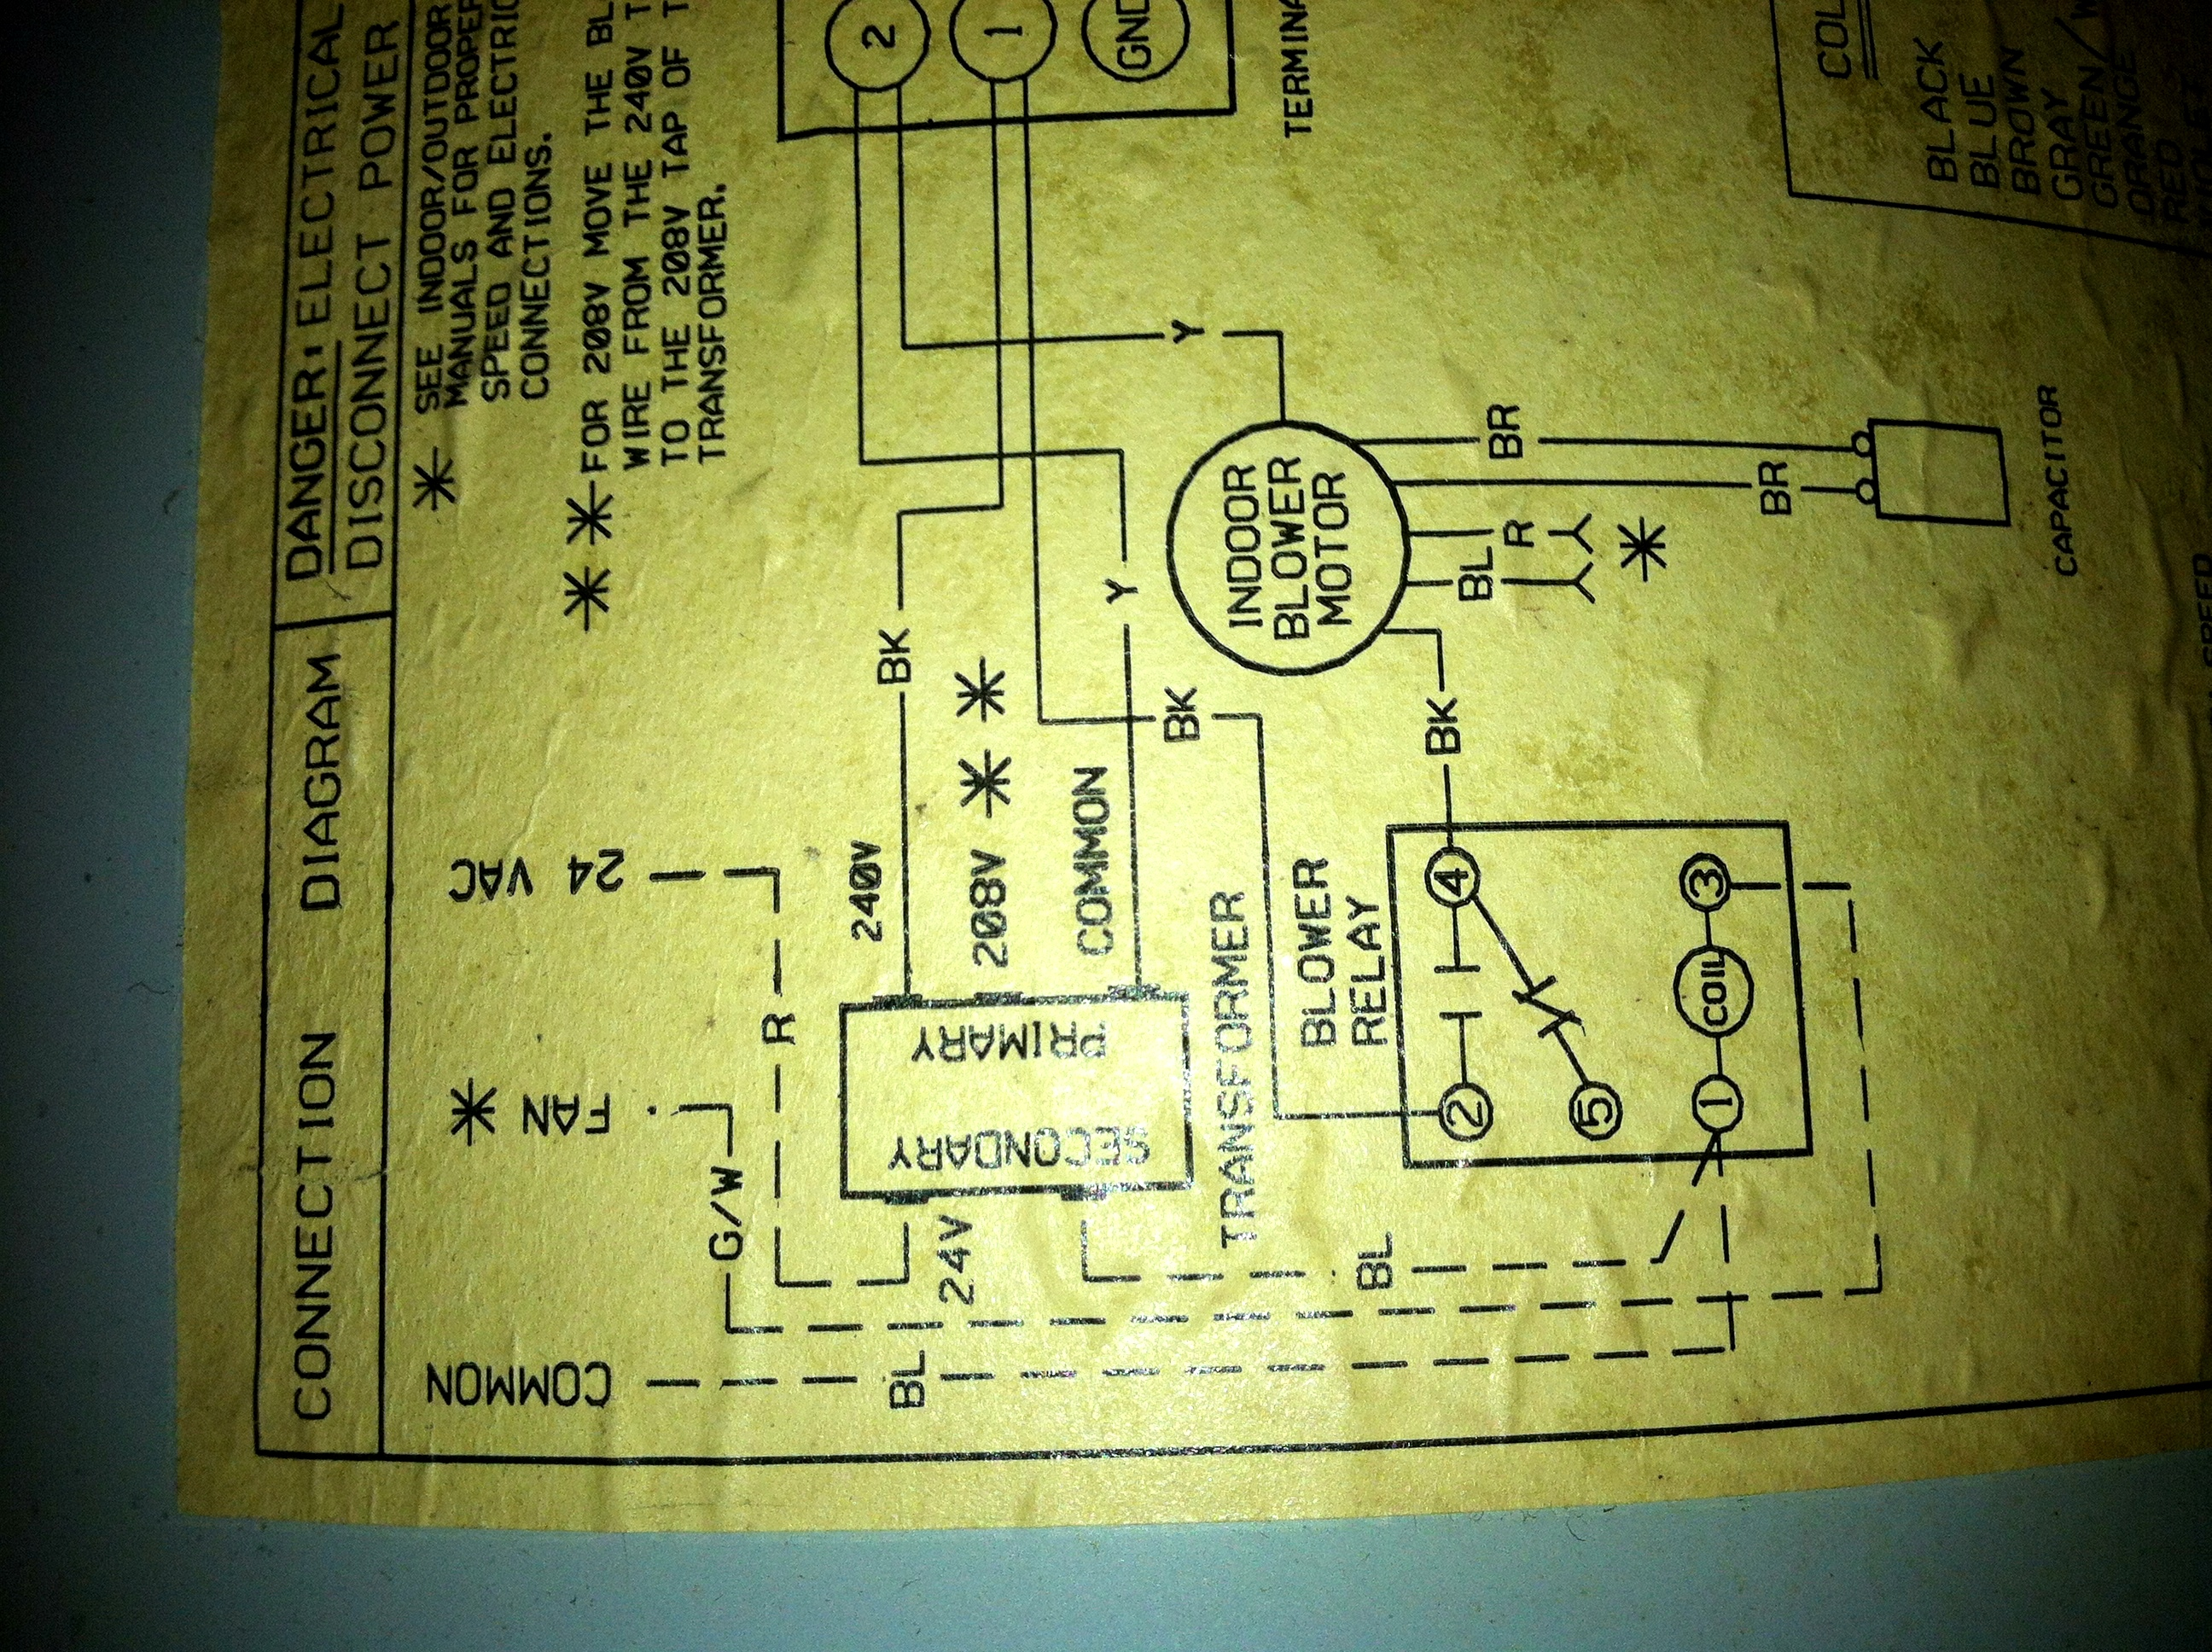 nordyne condenser wiring diagram nordyne image goodman air handler wiring diagram the wiring diagram on nordyne condenser wiring diagram